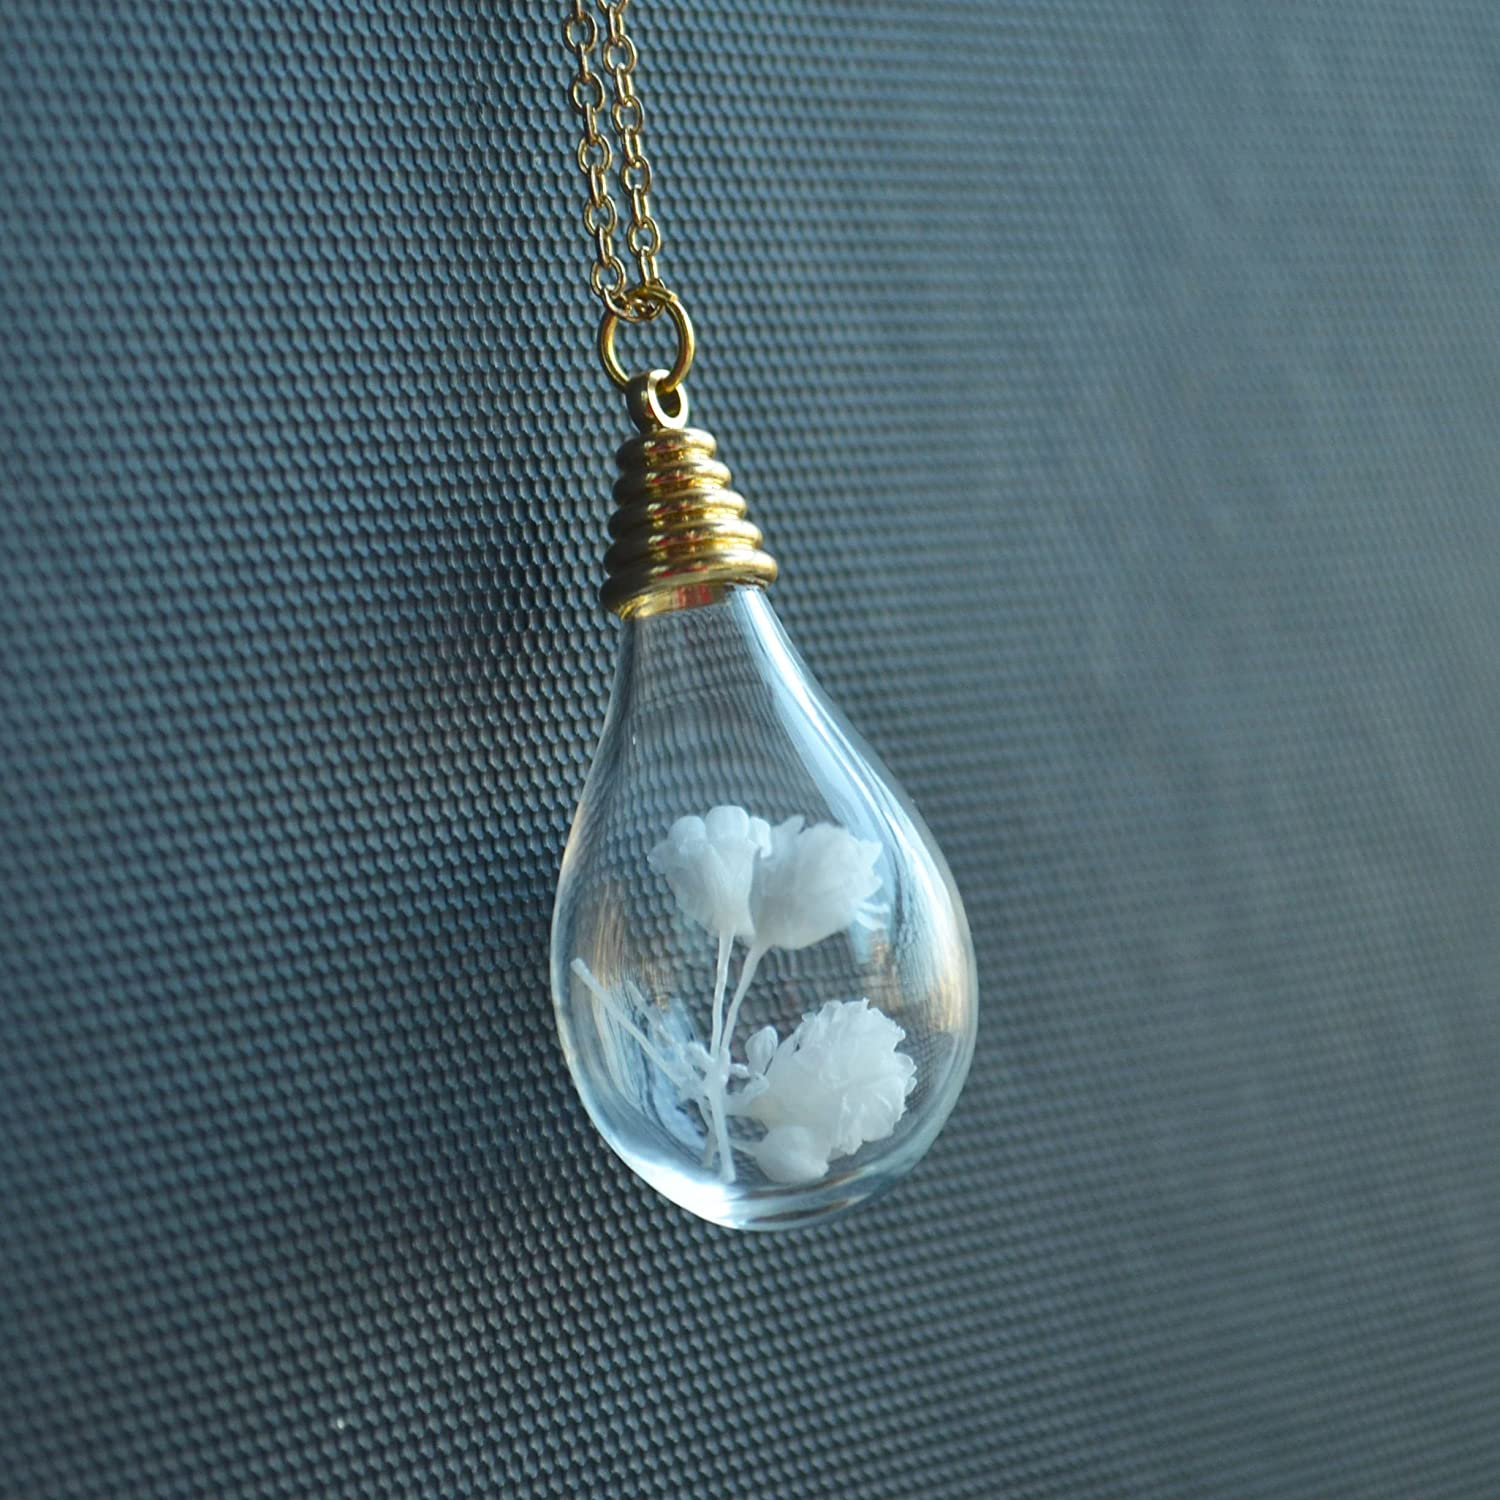 White Blooming Babysbreath Real Flower In Glass Water Drop 18K Gold Plated Long Necklace 26 Length